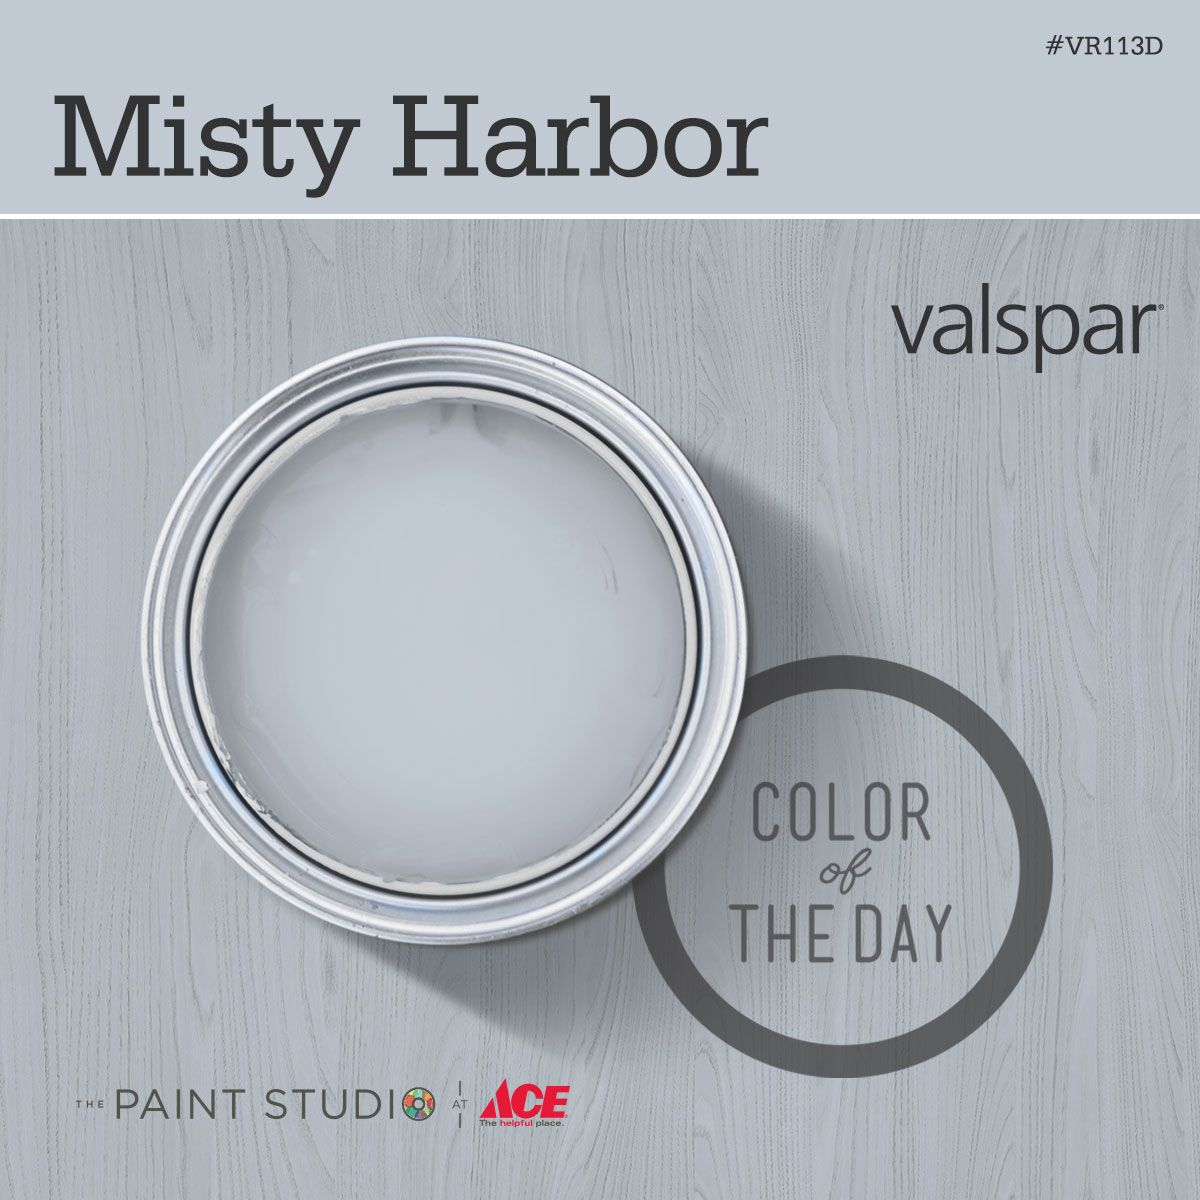 Color Of The Day Misty Harbor By Valspar 31daysofcolor Paint Inspiration Thepaintstudio Laundry Room Colors Room Paint Colors Room Paint